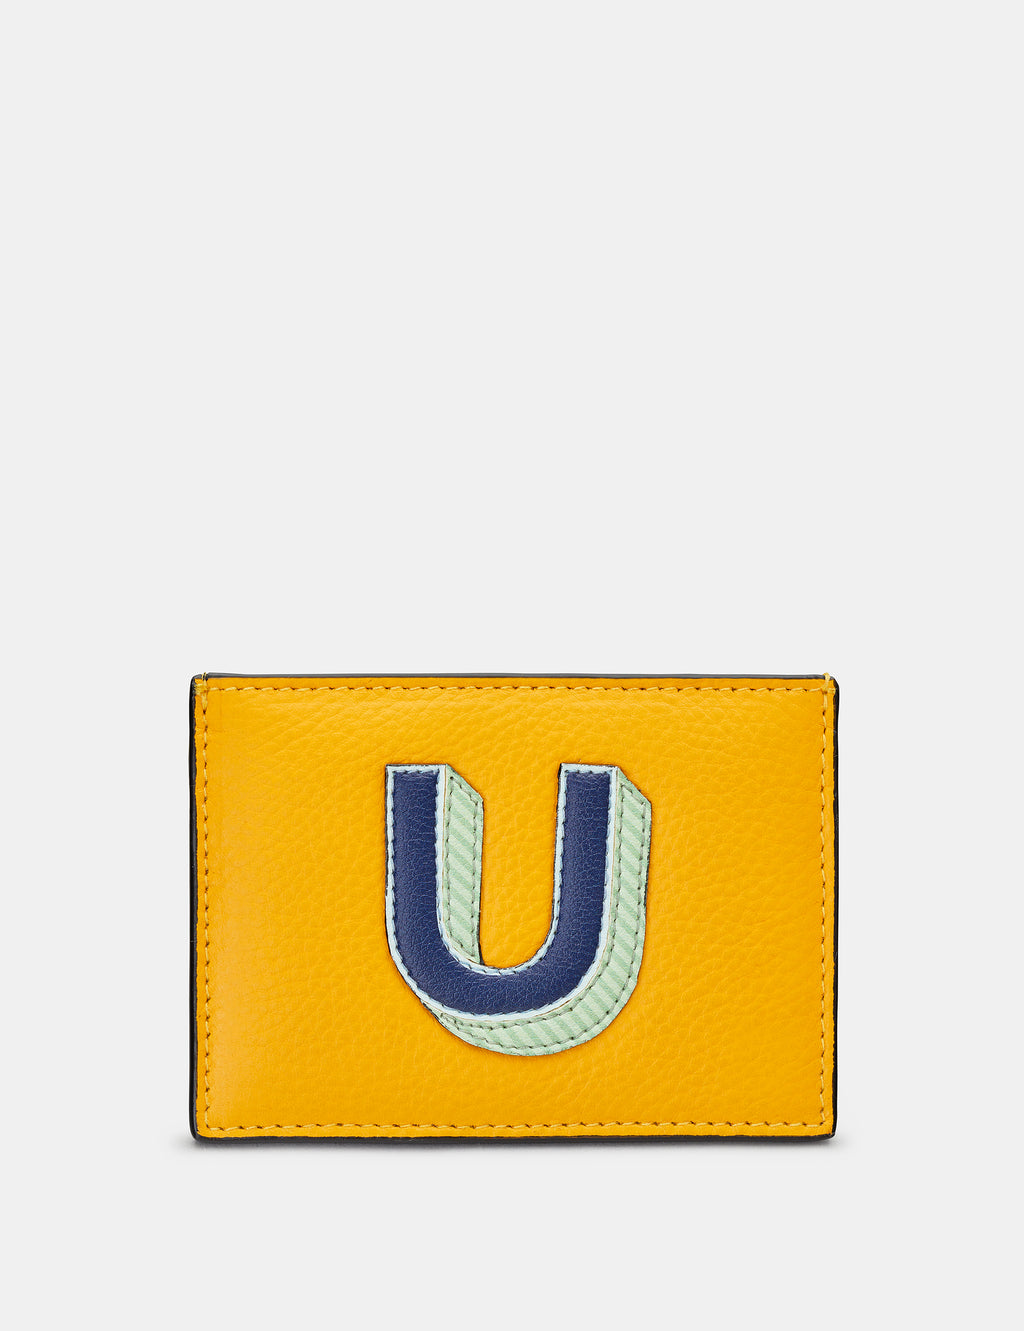 U Initial Mustard Yellow Leather Card Holder